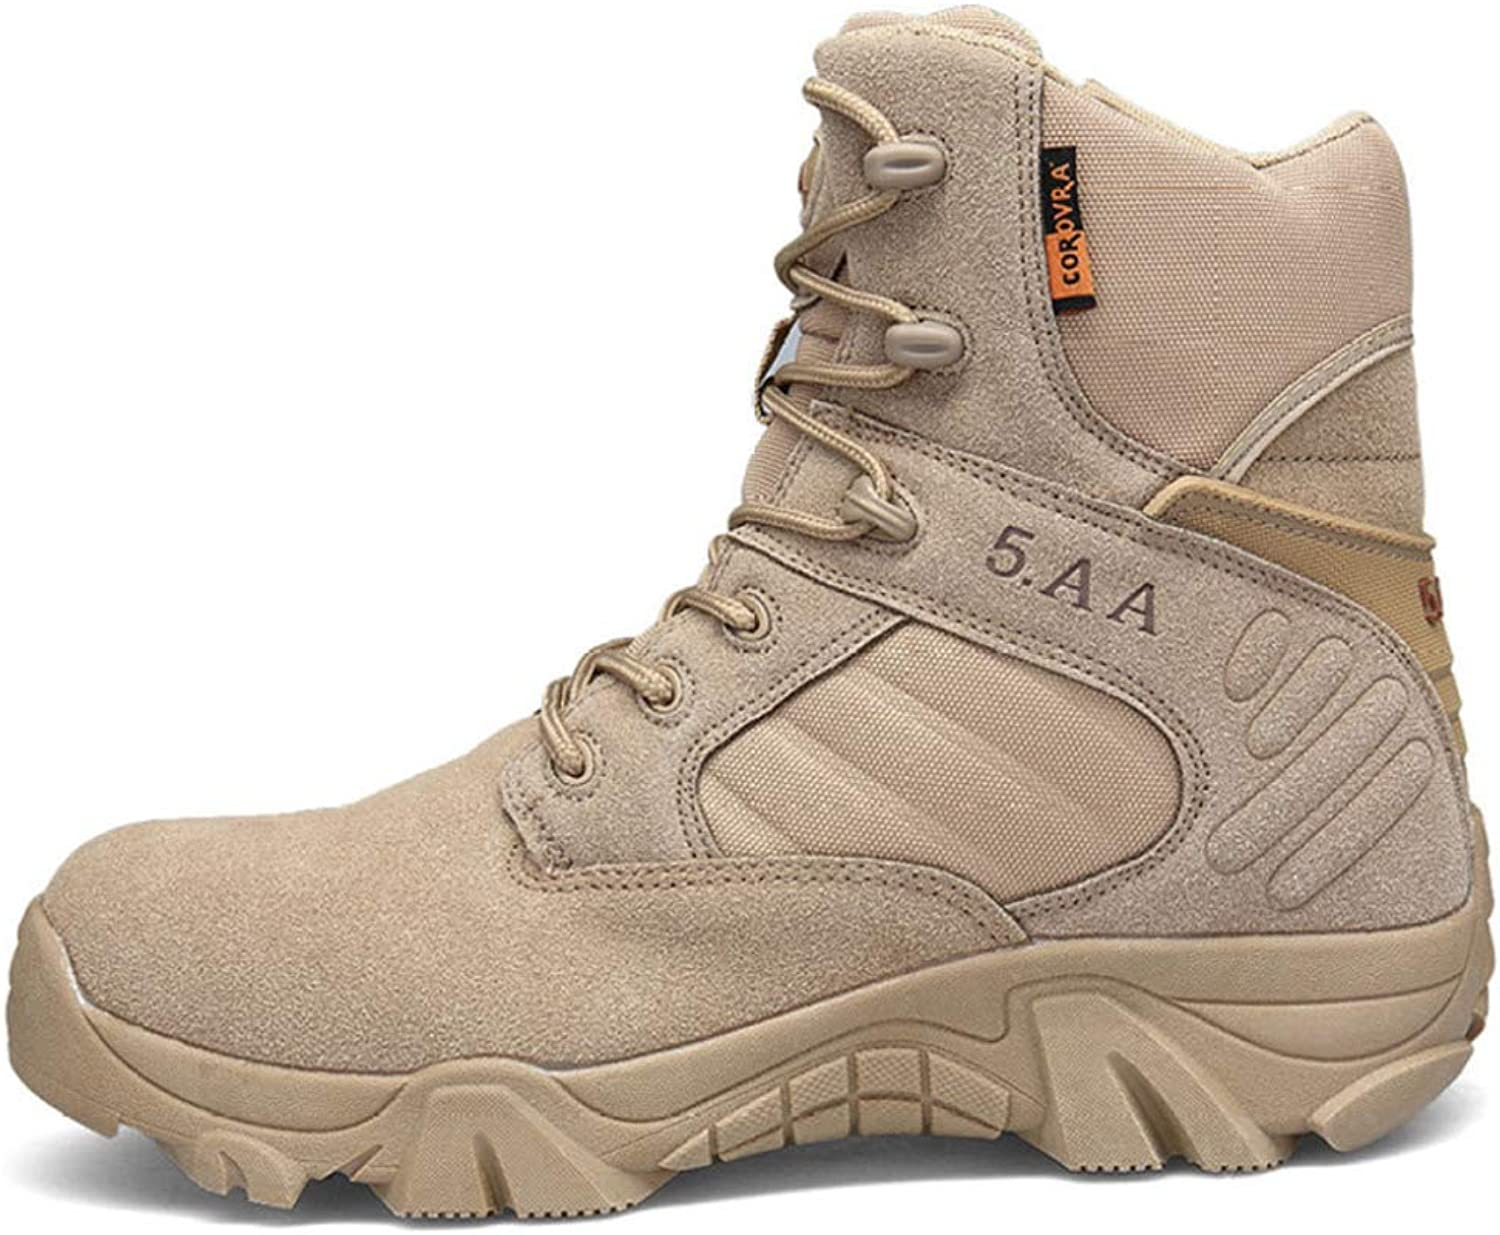 Mens Outdoor Mountaineering Desert Armed Tactics Boots Military Army Police Combat shoes Jungle Lace-Up Leather Footwear